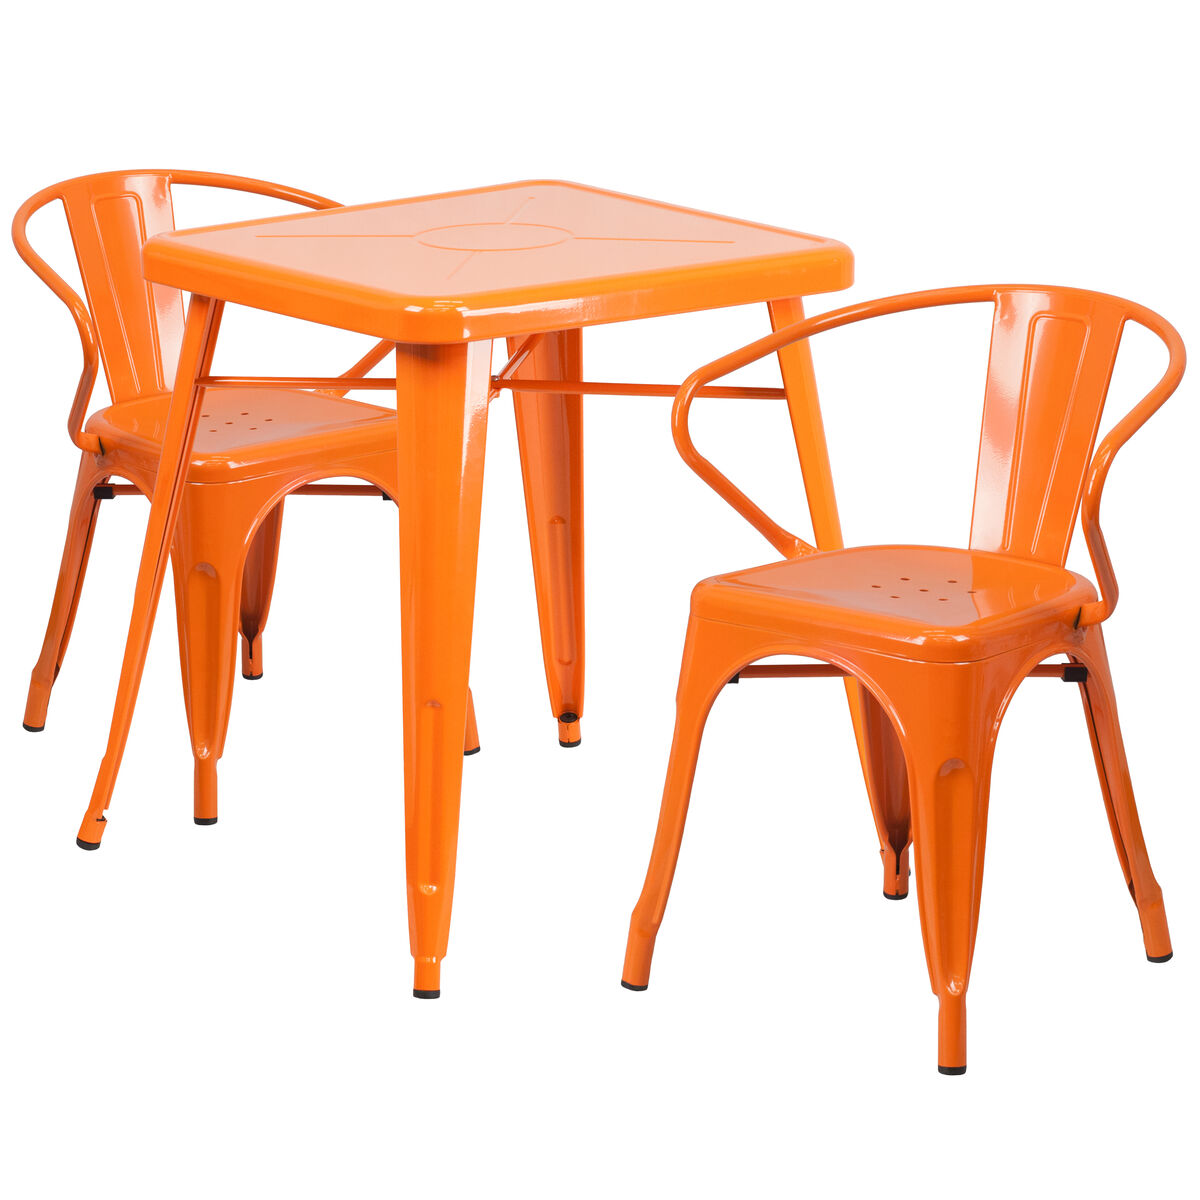 23.75SQ Orange Metal Table Set CH-31330-2-70-OR-GG ...